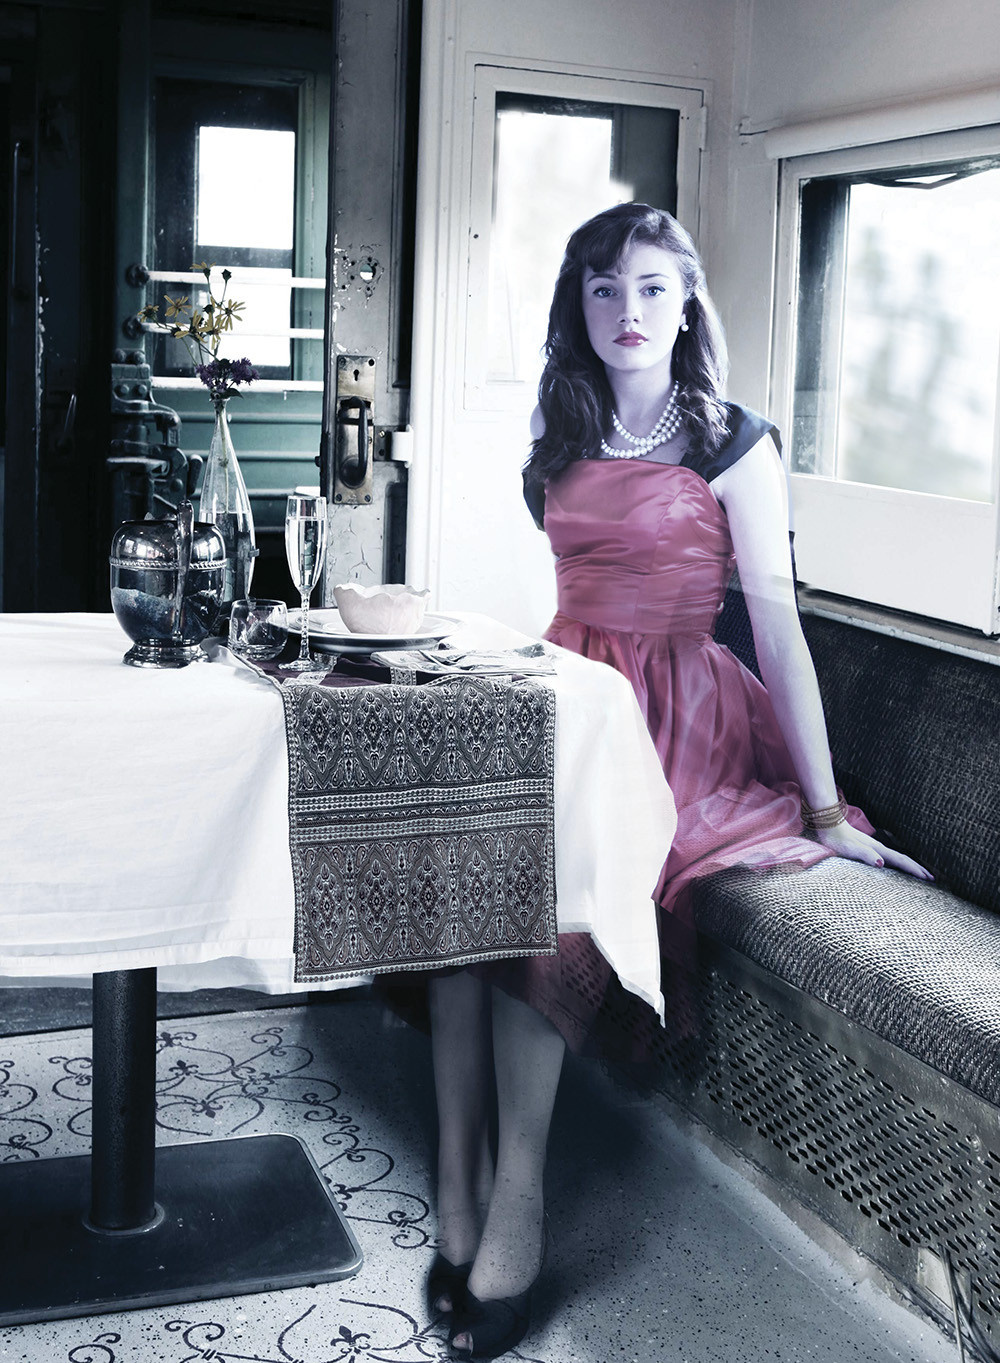 young beautiful woman in 1940's clothing/style in the dining car of an old train